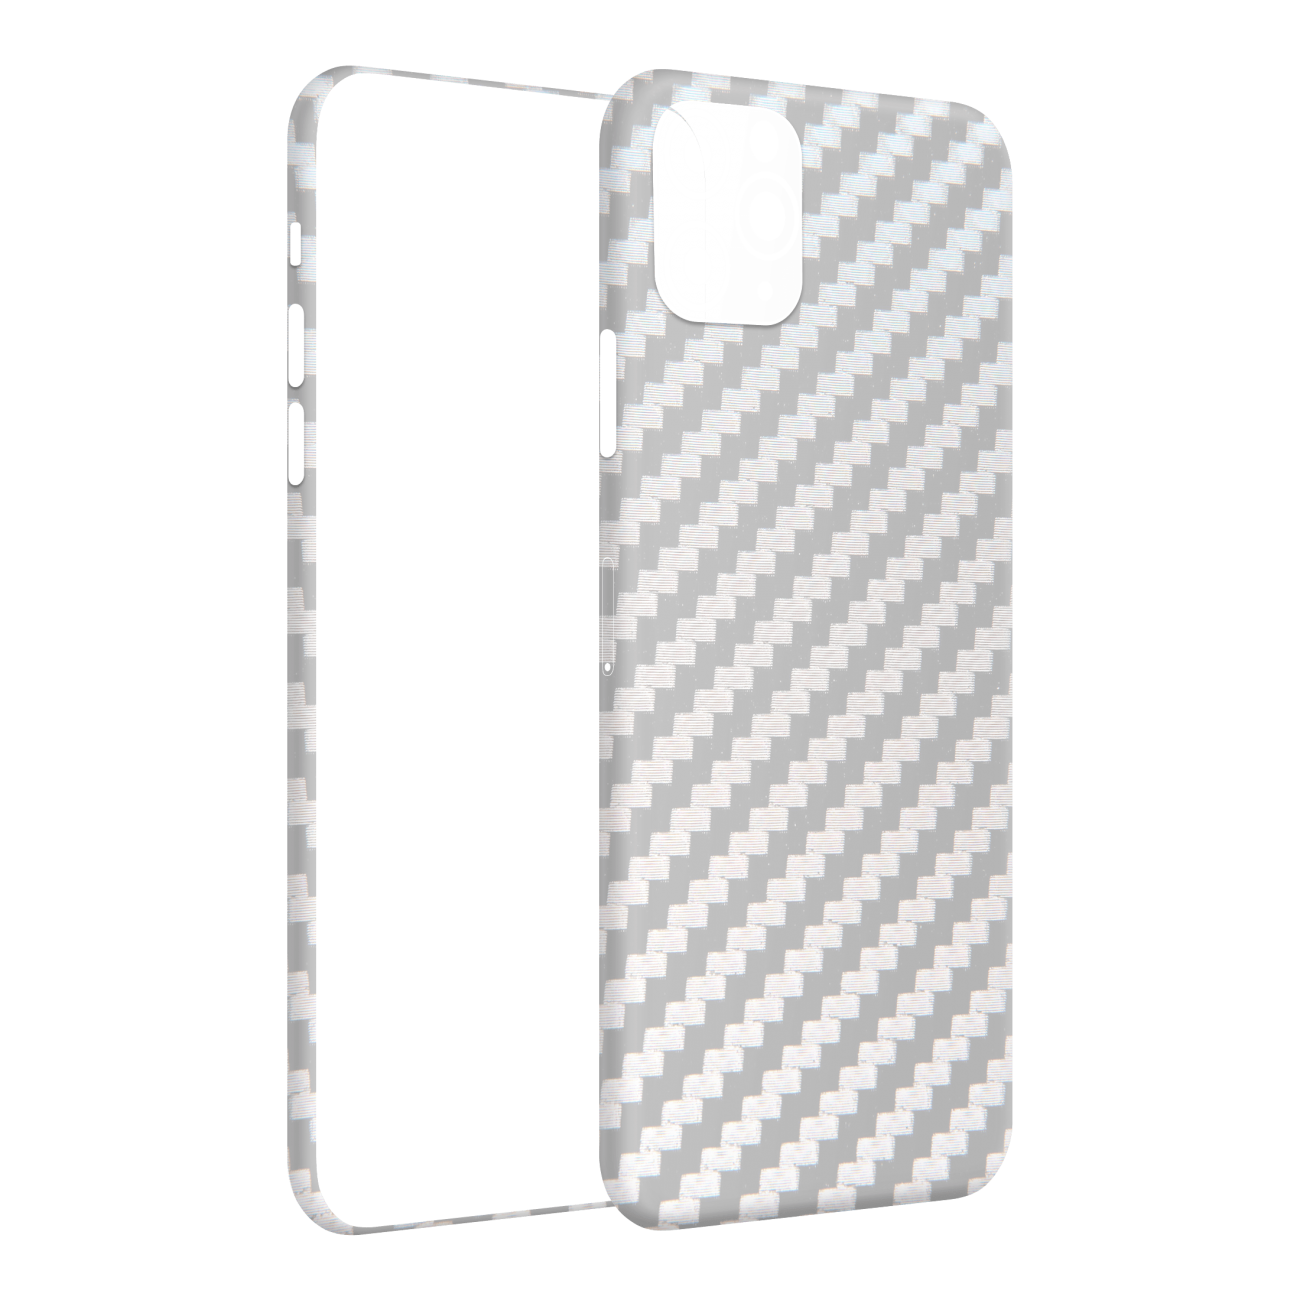 iphone-11-pro-max-skin_full-skin_white-carbon.png